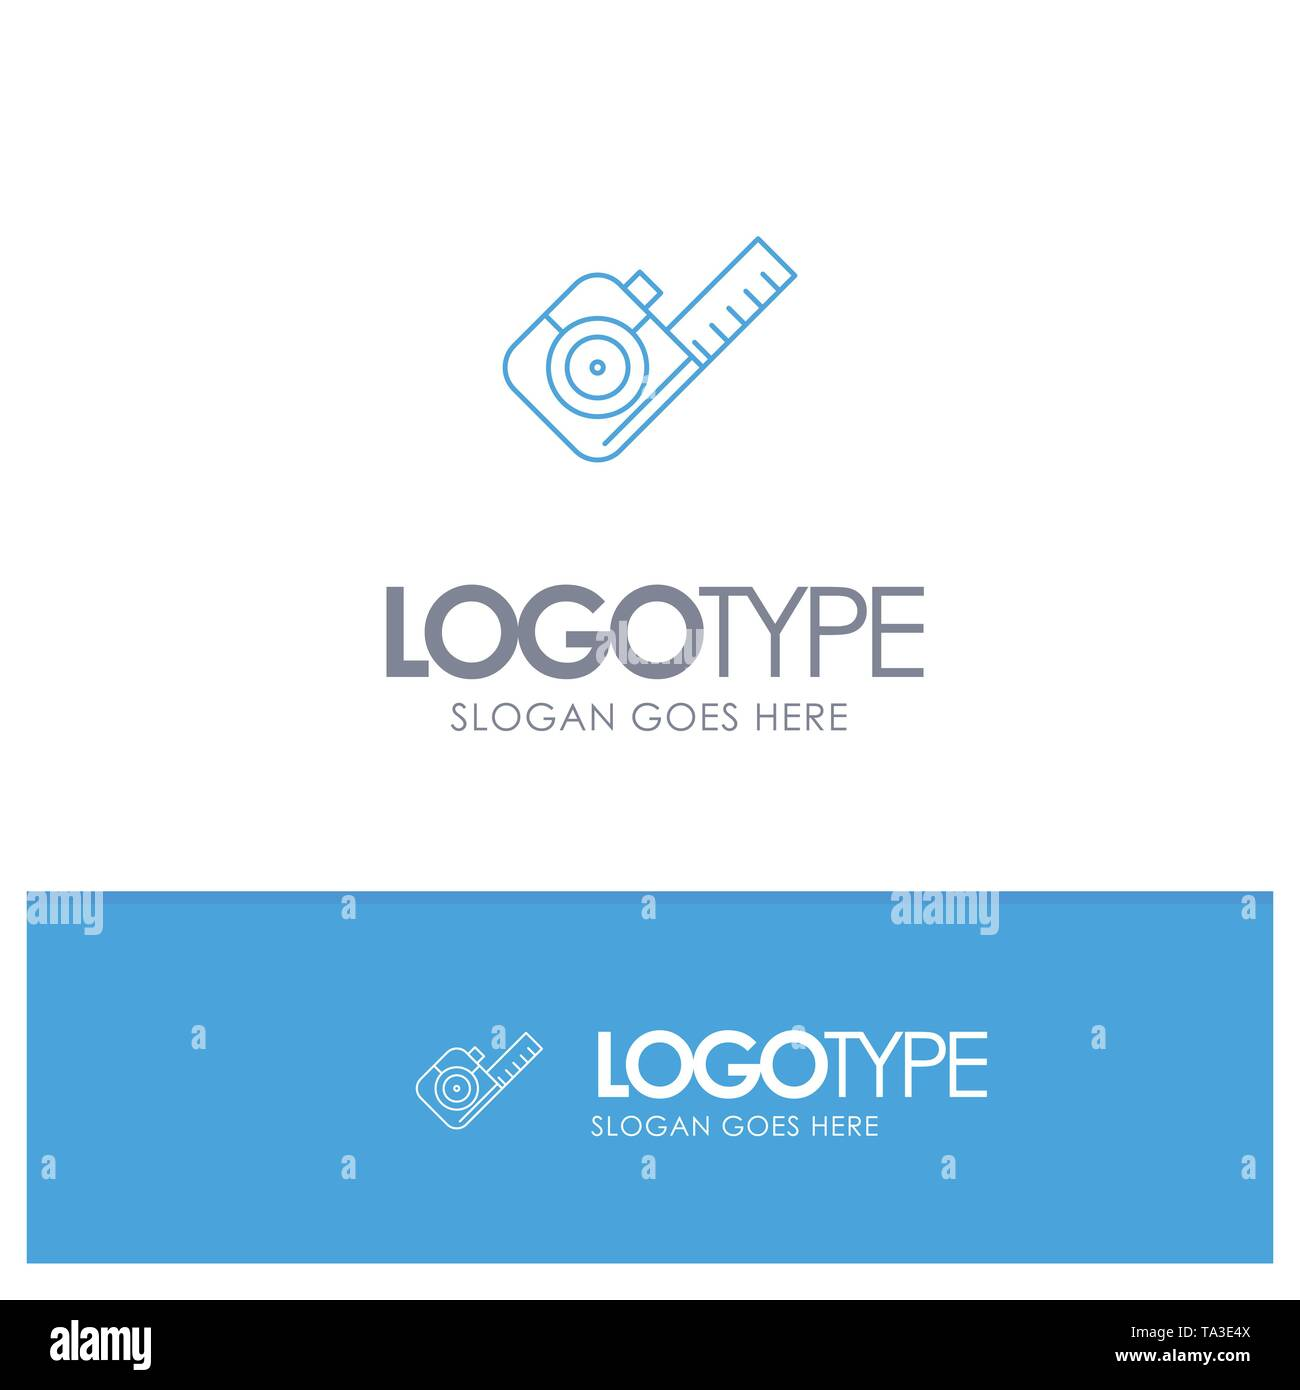 Measure, Measuring, Tape, Tool Blue outLine Logo with place for tagline - Stock Image